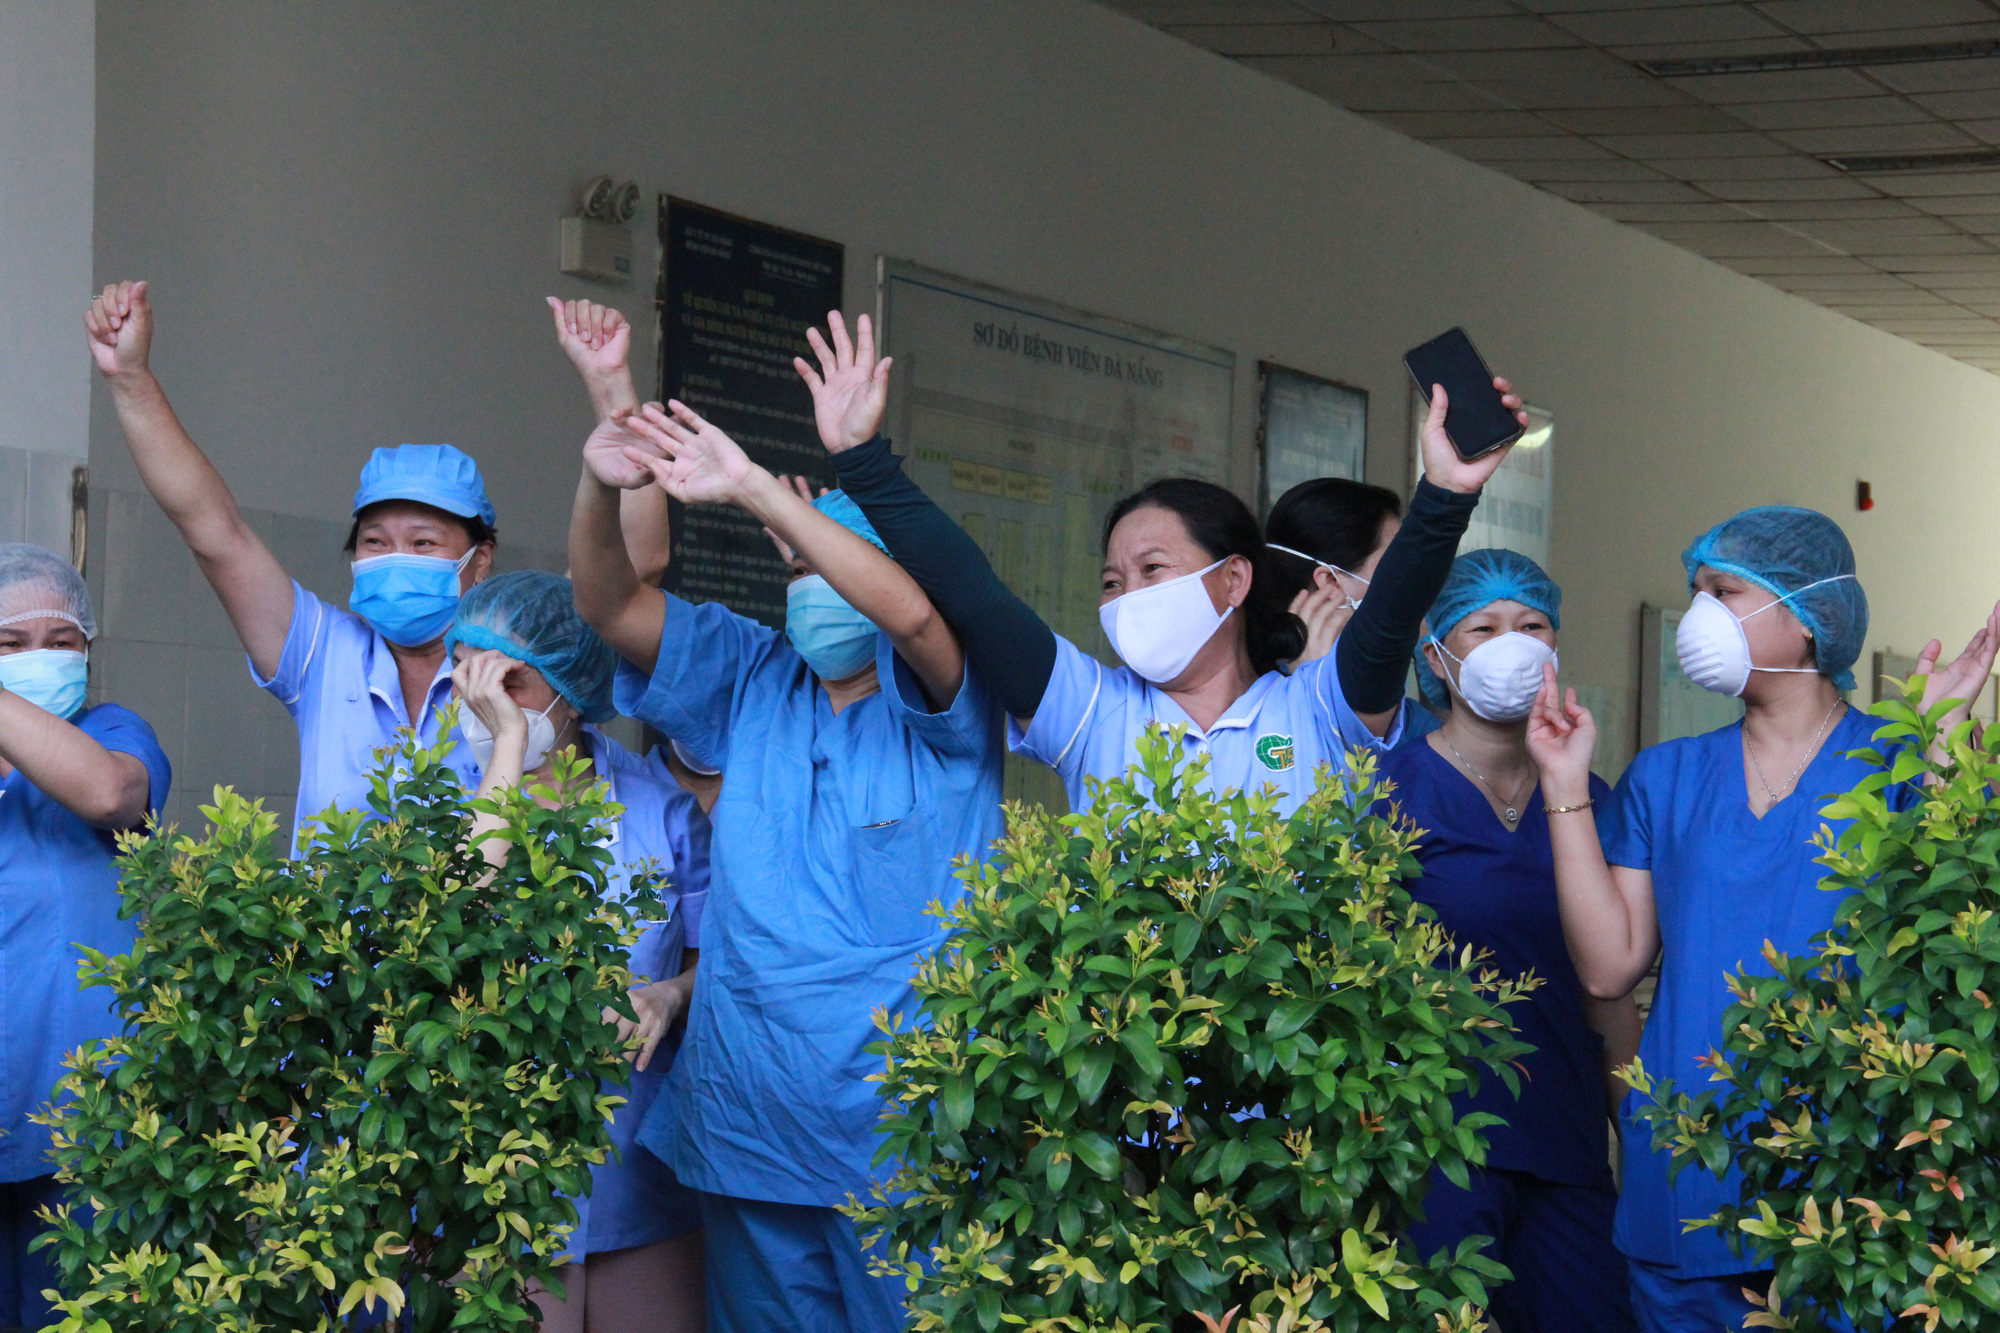 Health workers cheer as a lockdown is lifted from Da Nang Hospital in Da Nang City, Vietnam, August 25, 2020. Photo: Truong Trung / Tuoi Tre